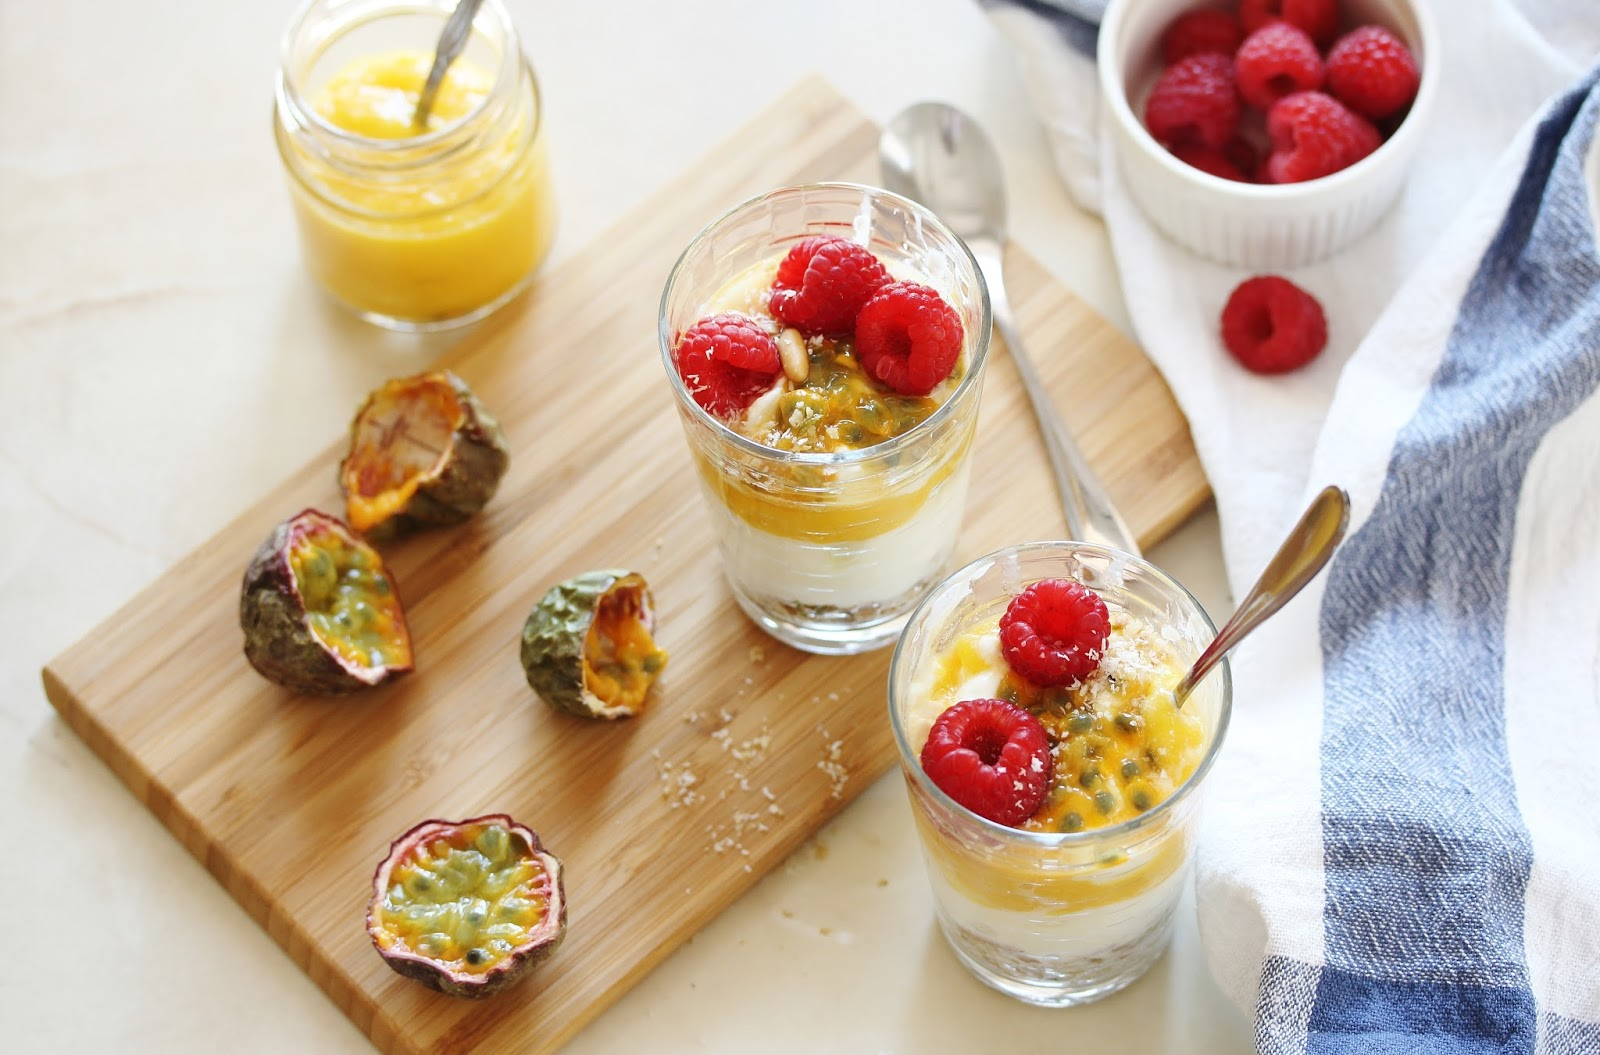 ... Pistachio Breakfast Parfait . This Middle Eastern inspired parfait